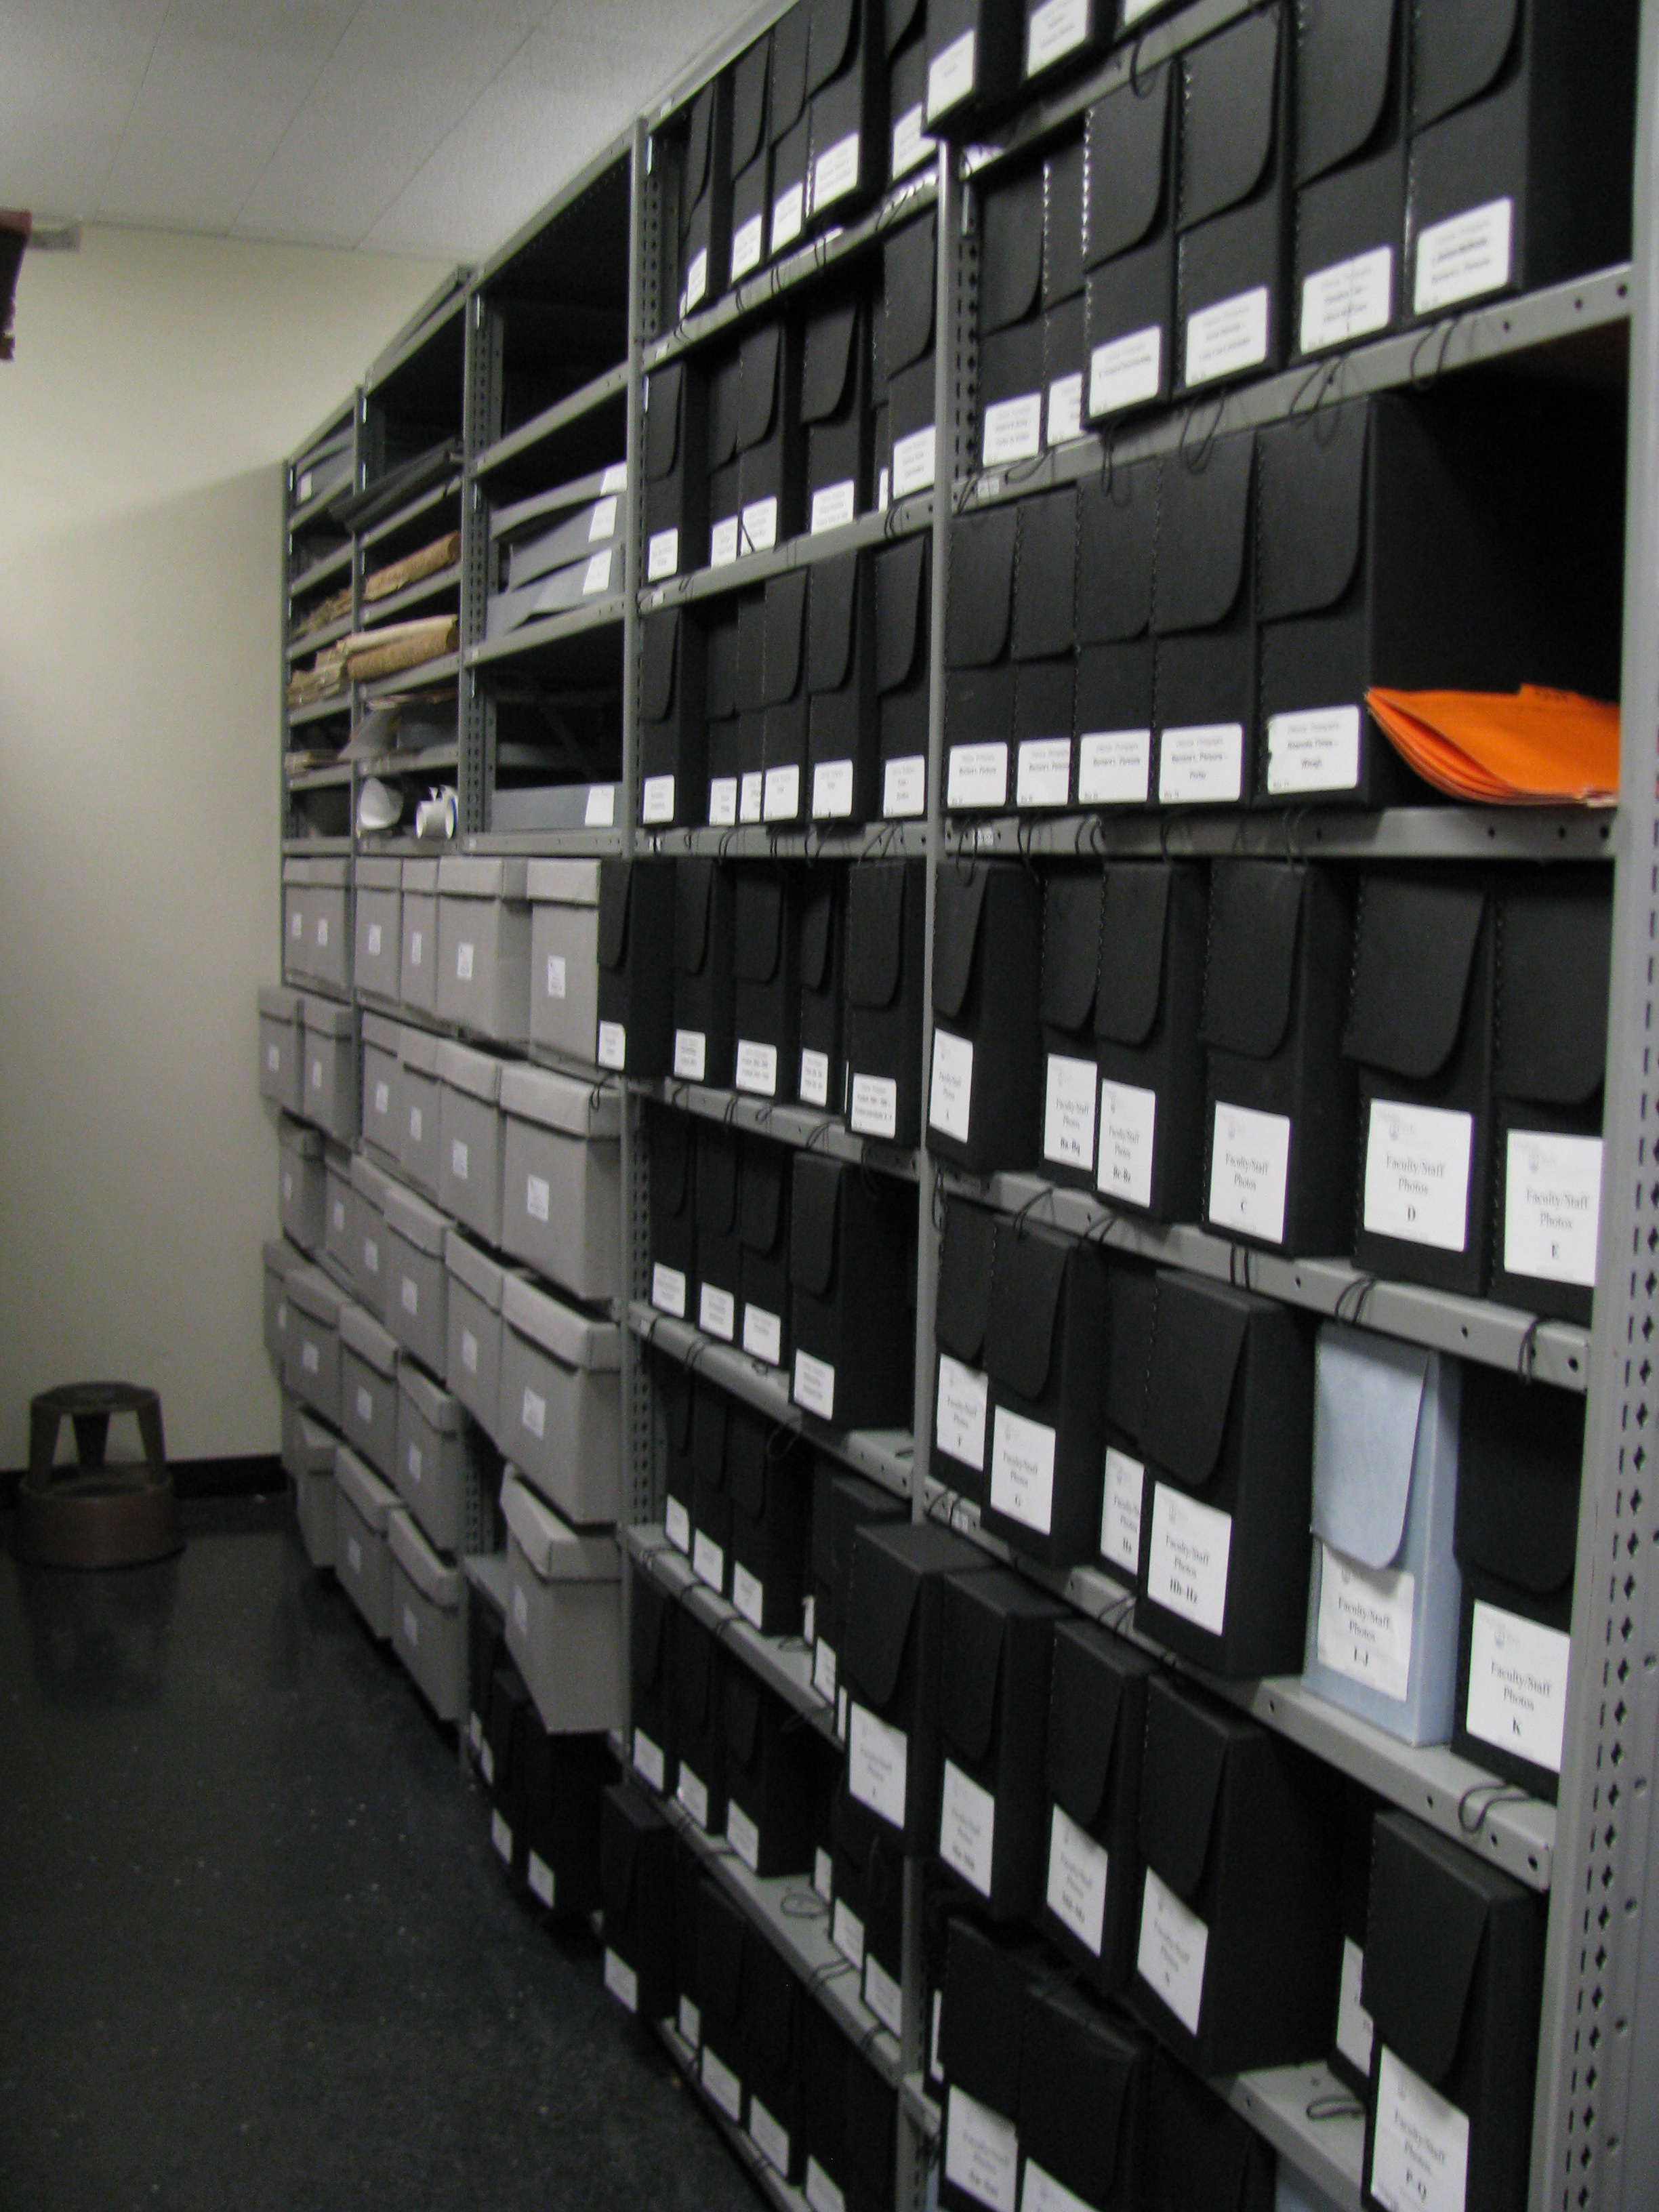 Our historical photograph collection is in black acid-free boxes and is organized generally by topic. Beyond it, you can see some bound and boxed newspapers above and part of our collection of vertical files on university history.